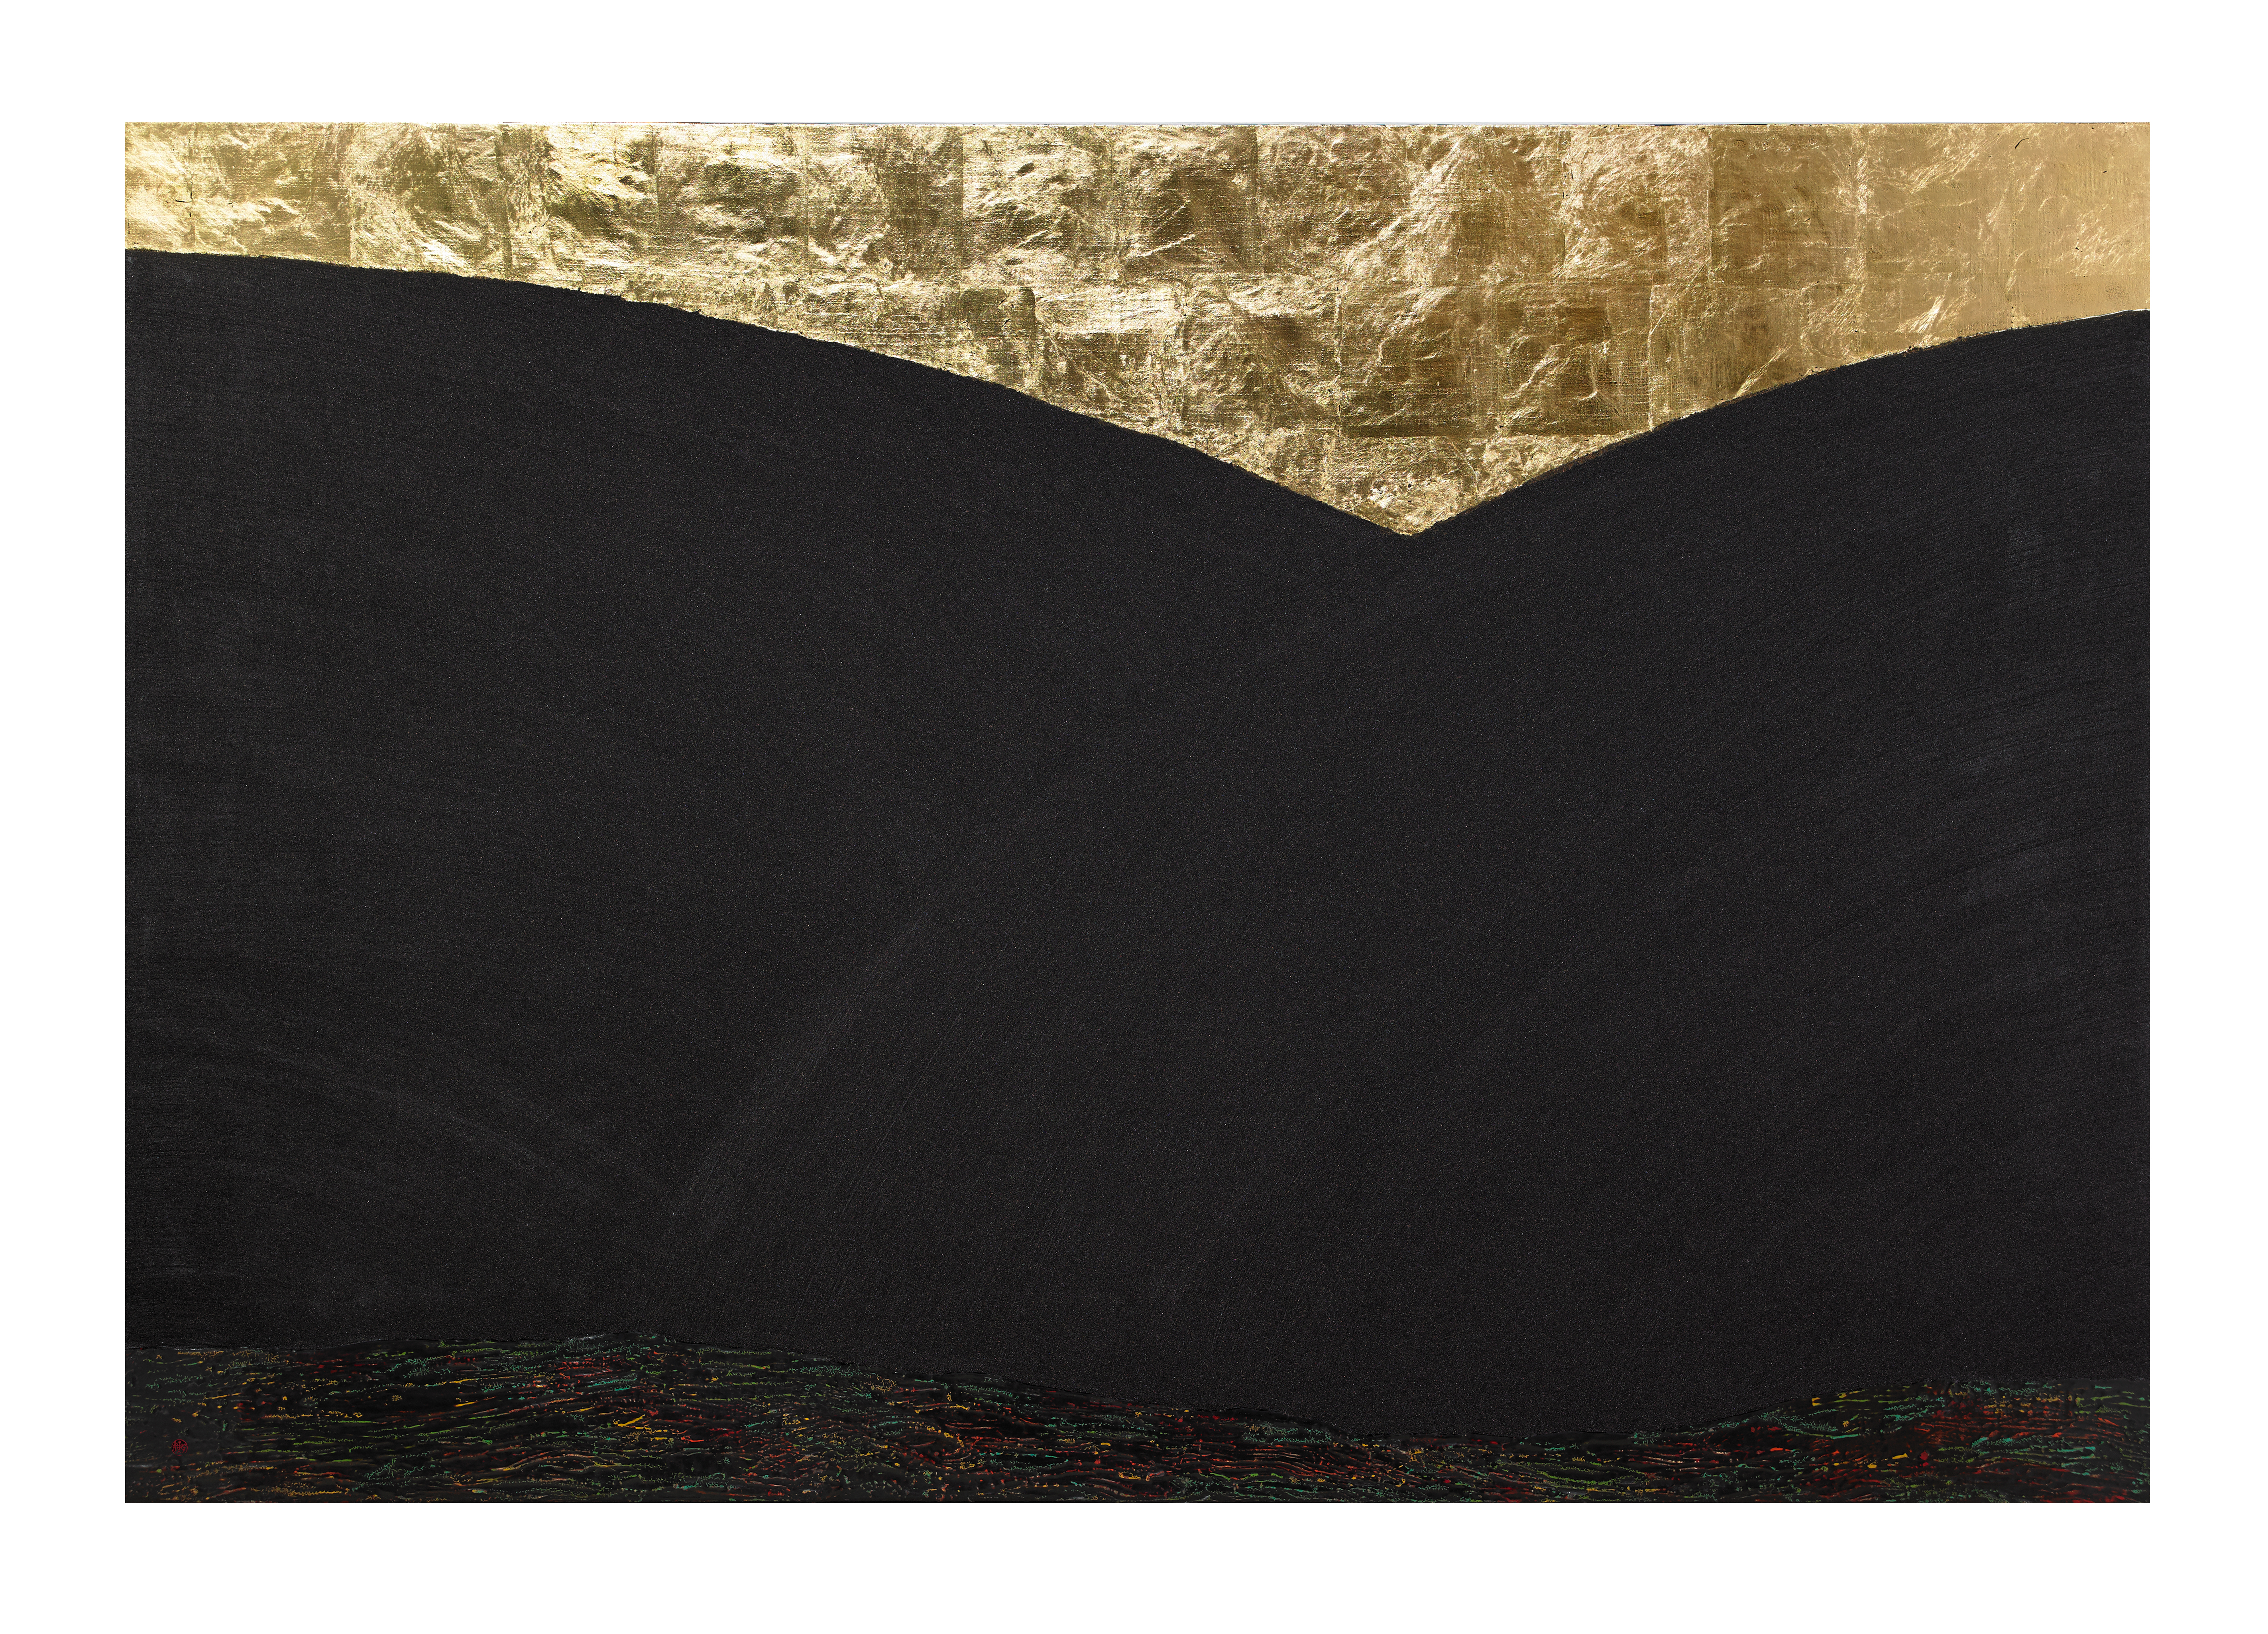 Flow _7_80x120cm_natural lacquer on wooden panel, gold leaf, stone powder_2018